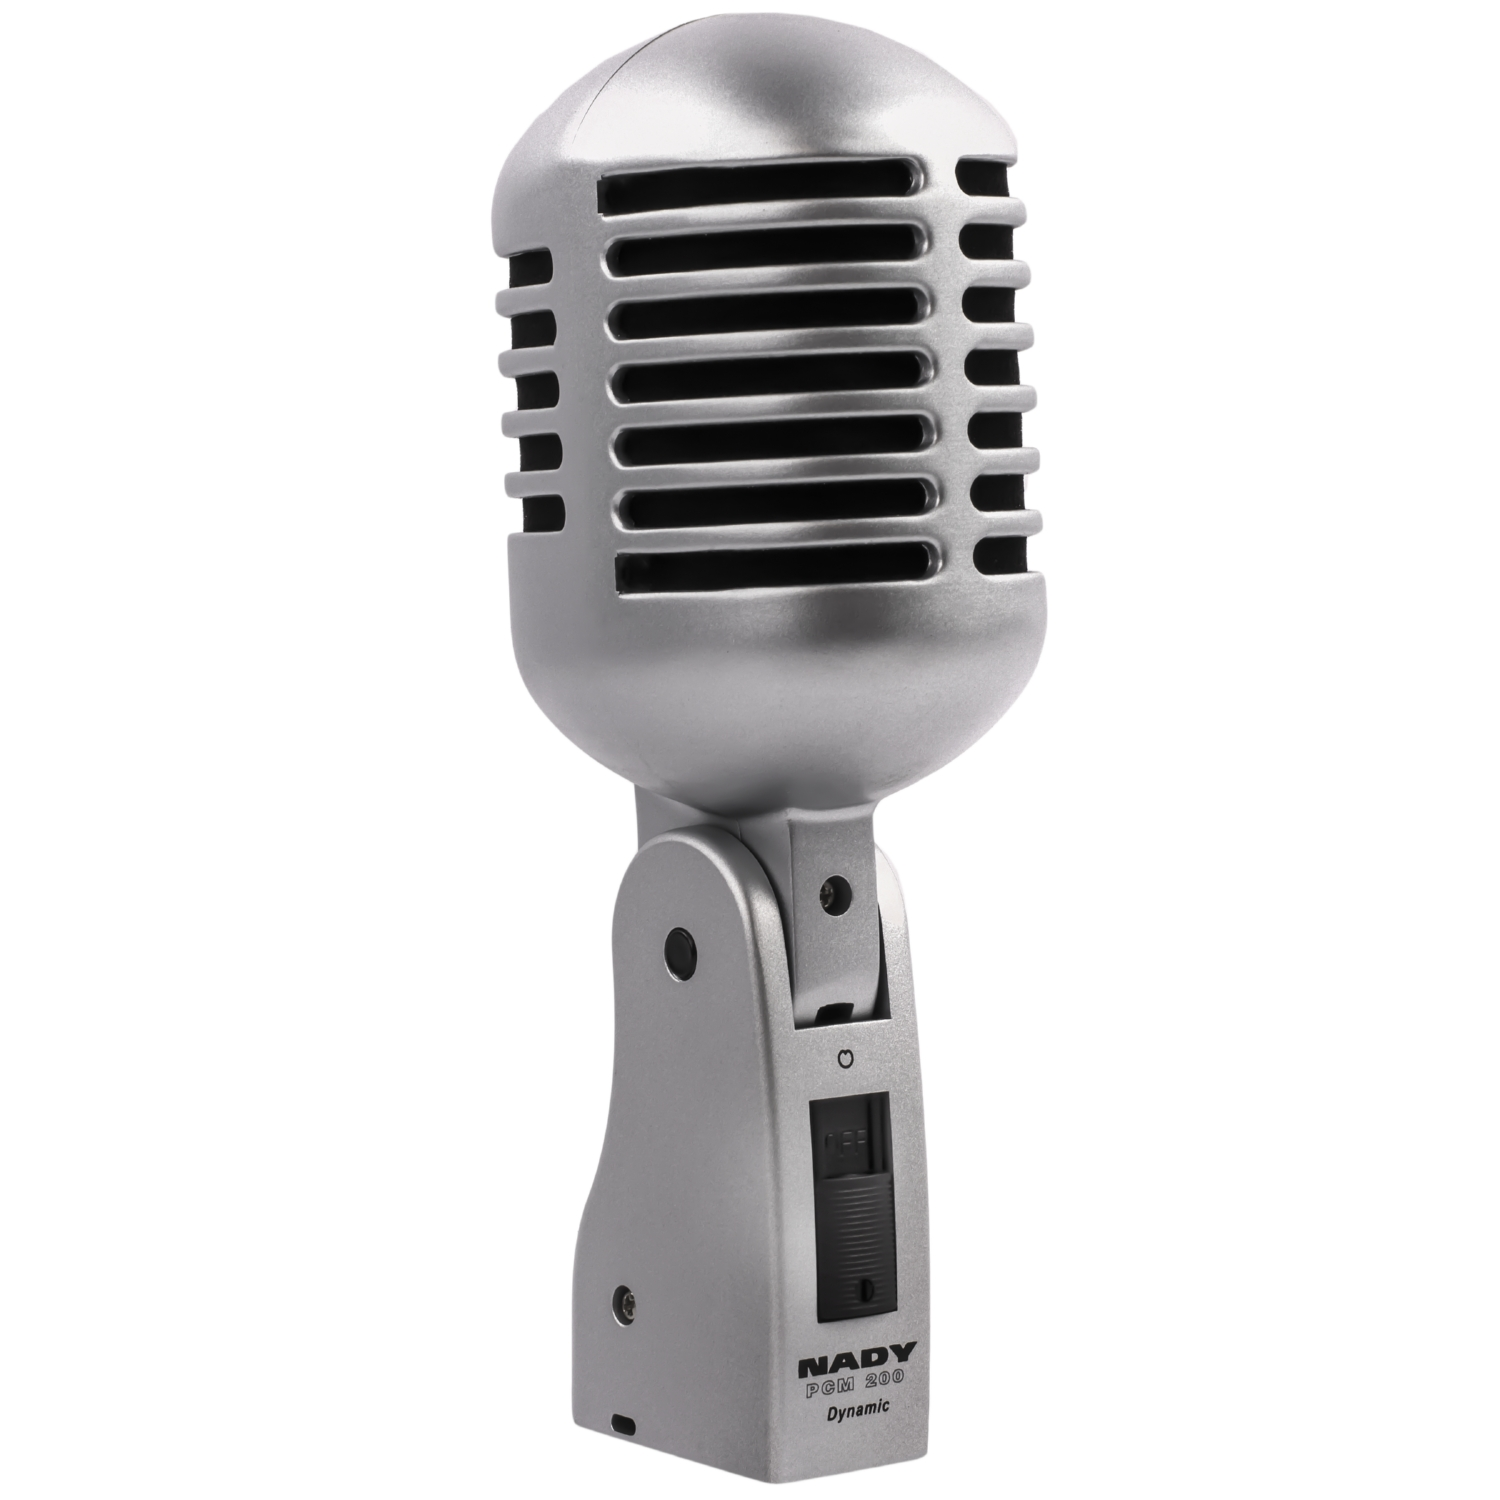 Dynamic Sitemap: PCM-200 Professional Classic Style Dynamic Microphone